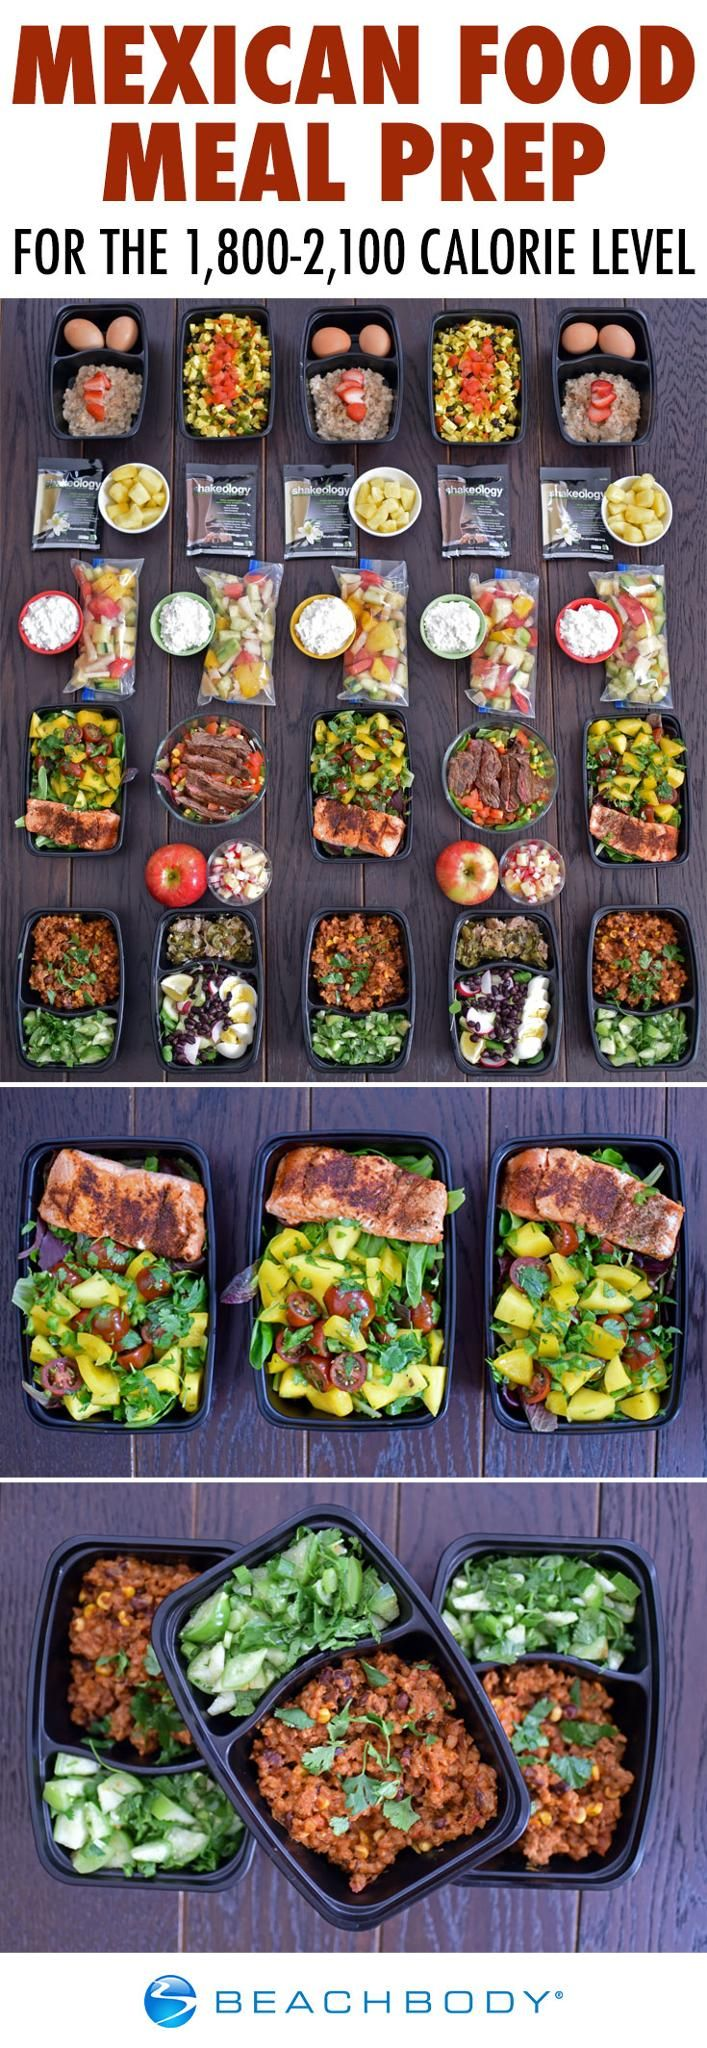 What if you could eat Mexican food at every single meal and still stick to your nutrition plan? This meal prep plan let's you do just that! With five days of Mexican-themed dishes, it's one of our delicious most meal plans yet! // healthy eating // cinco de mayo // Beachbody // BeachbodyBlog.com